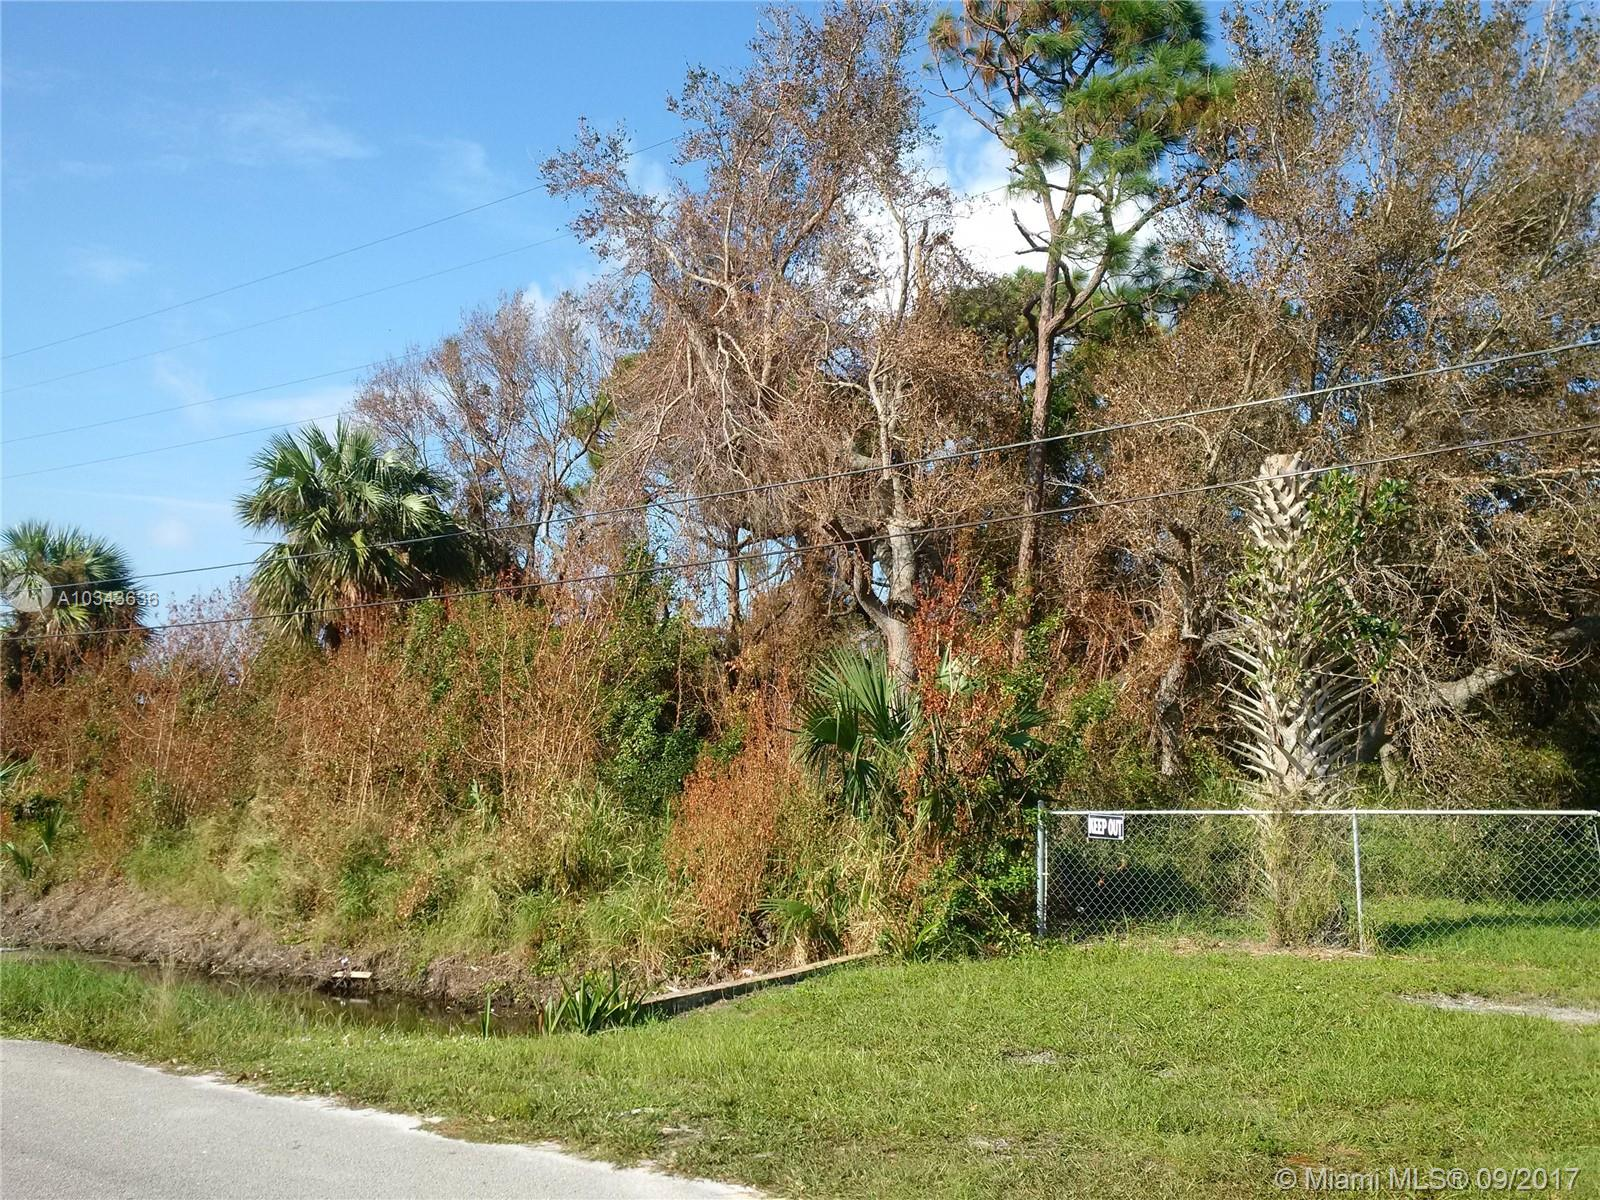 17 North Cswy, Fort Pierce, Florida 34946, ,Land/boat Docks,For Sale,17 North Cswy,A10343636